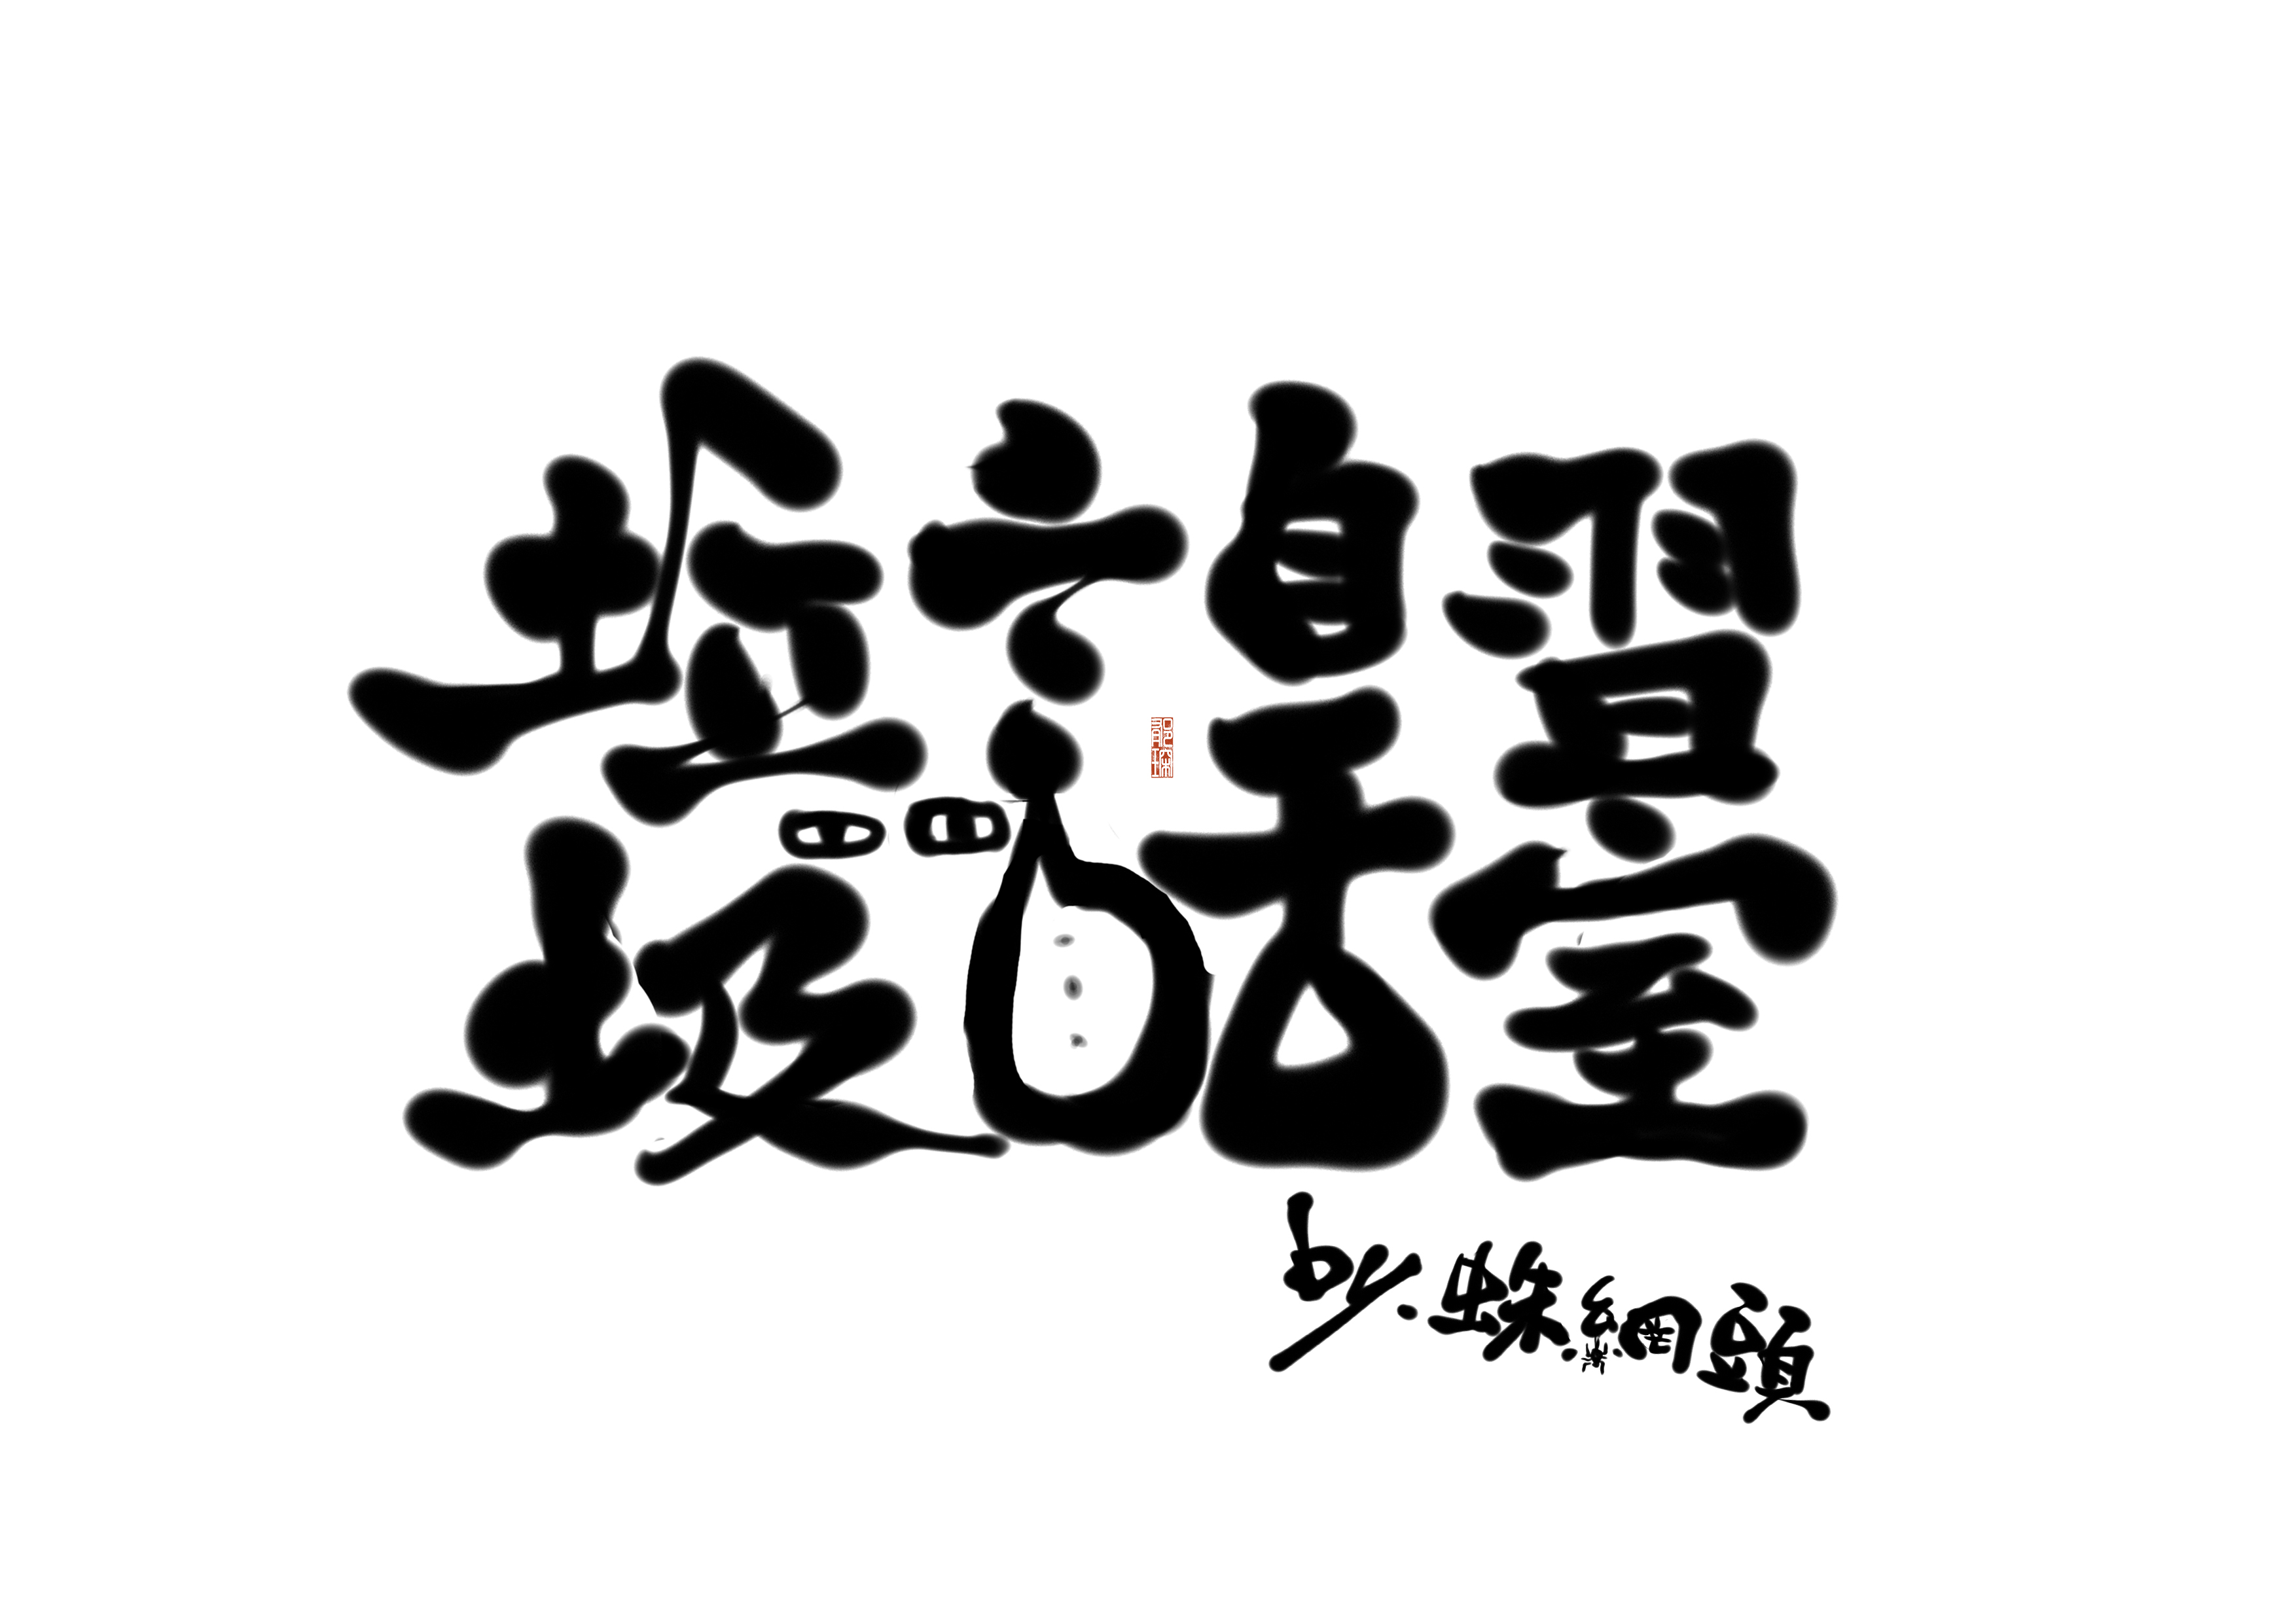 Interesting Chinese Creative Font Design-A collection of recent font exercises